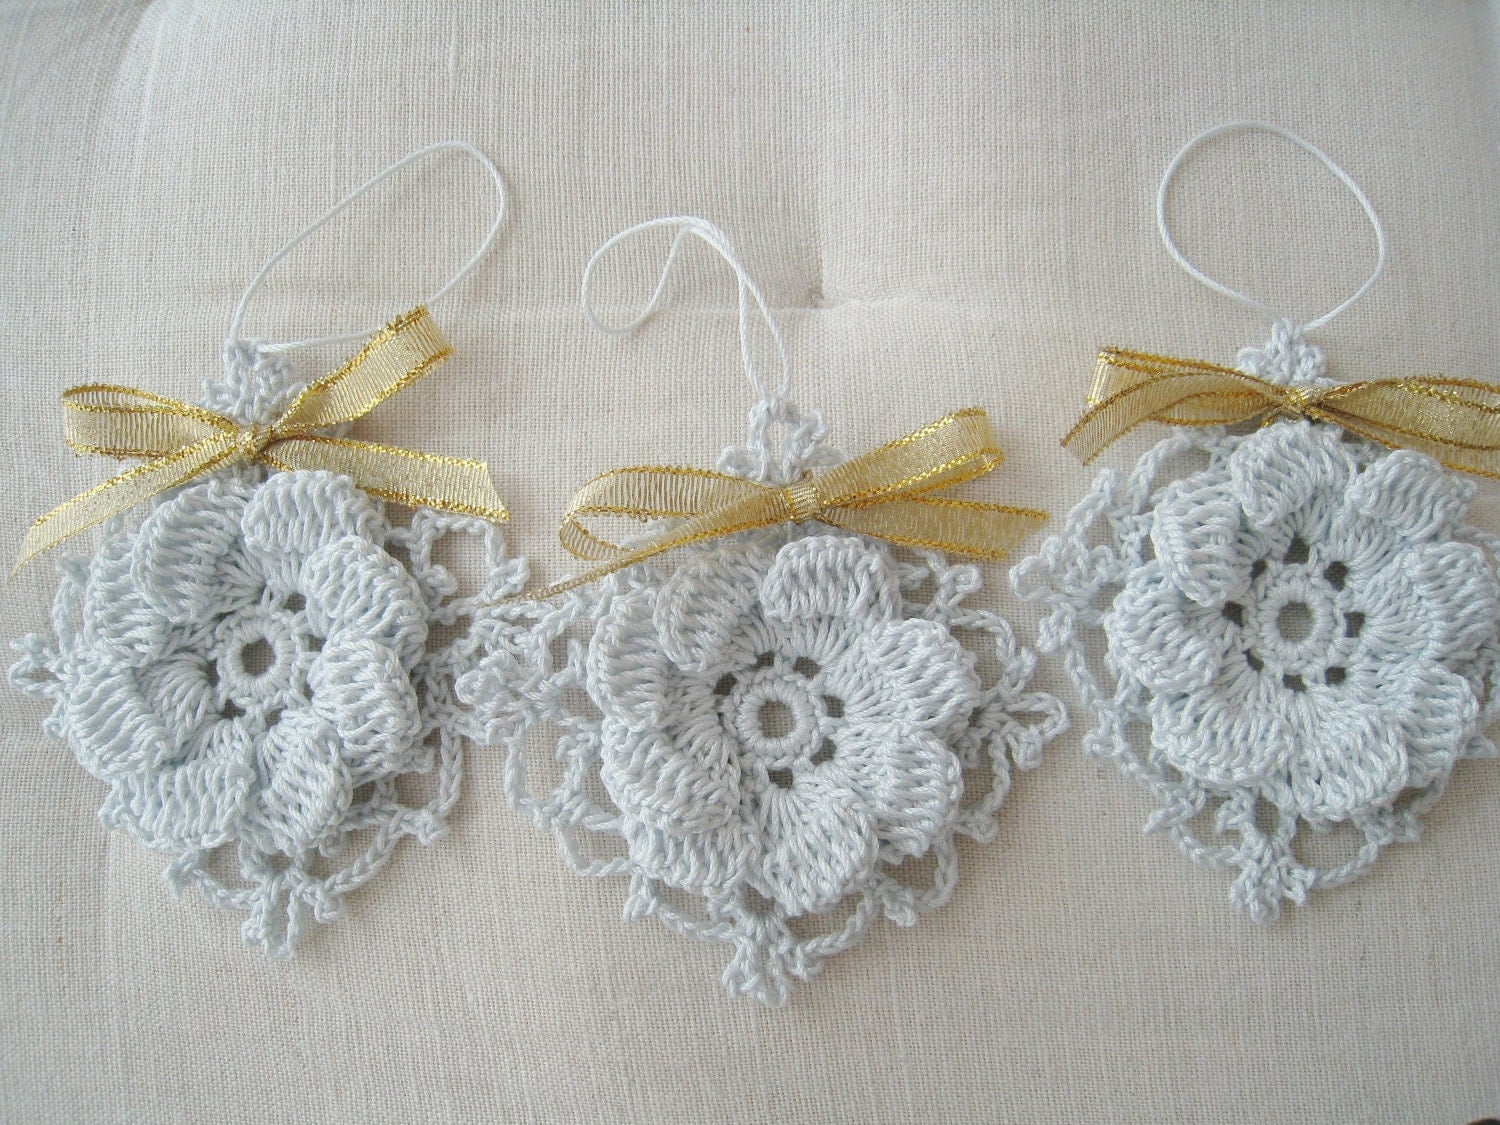 Decorative Crochet : Contemporary Crochet Ornaments Modern Wall Art Decor by DoSymphony